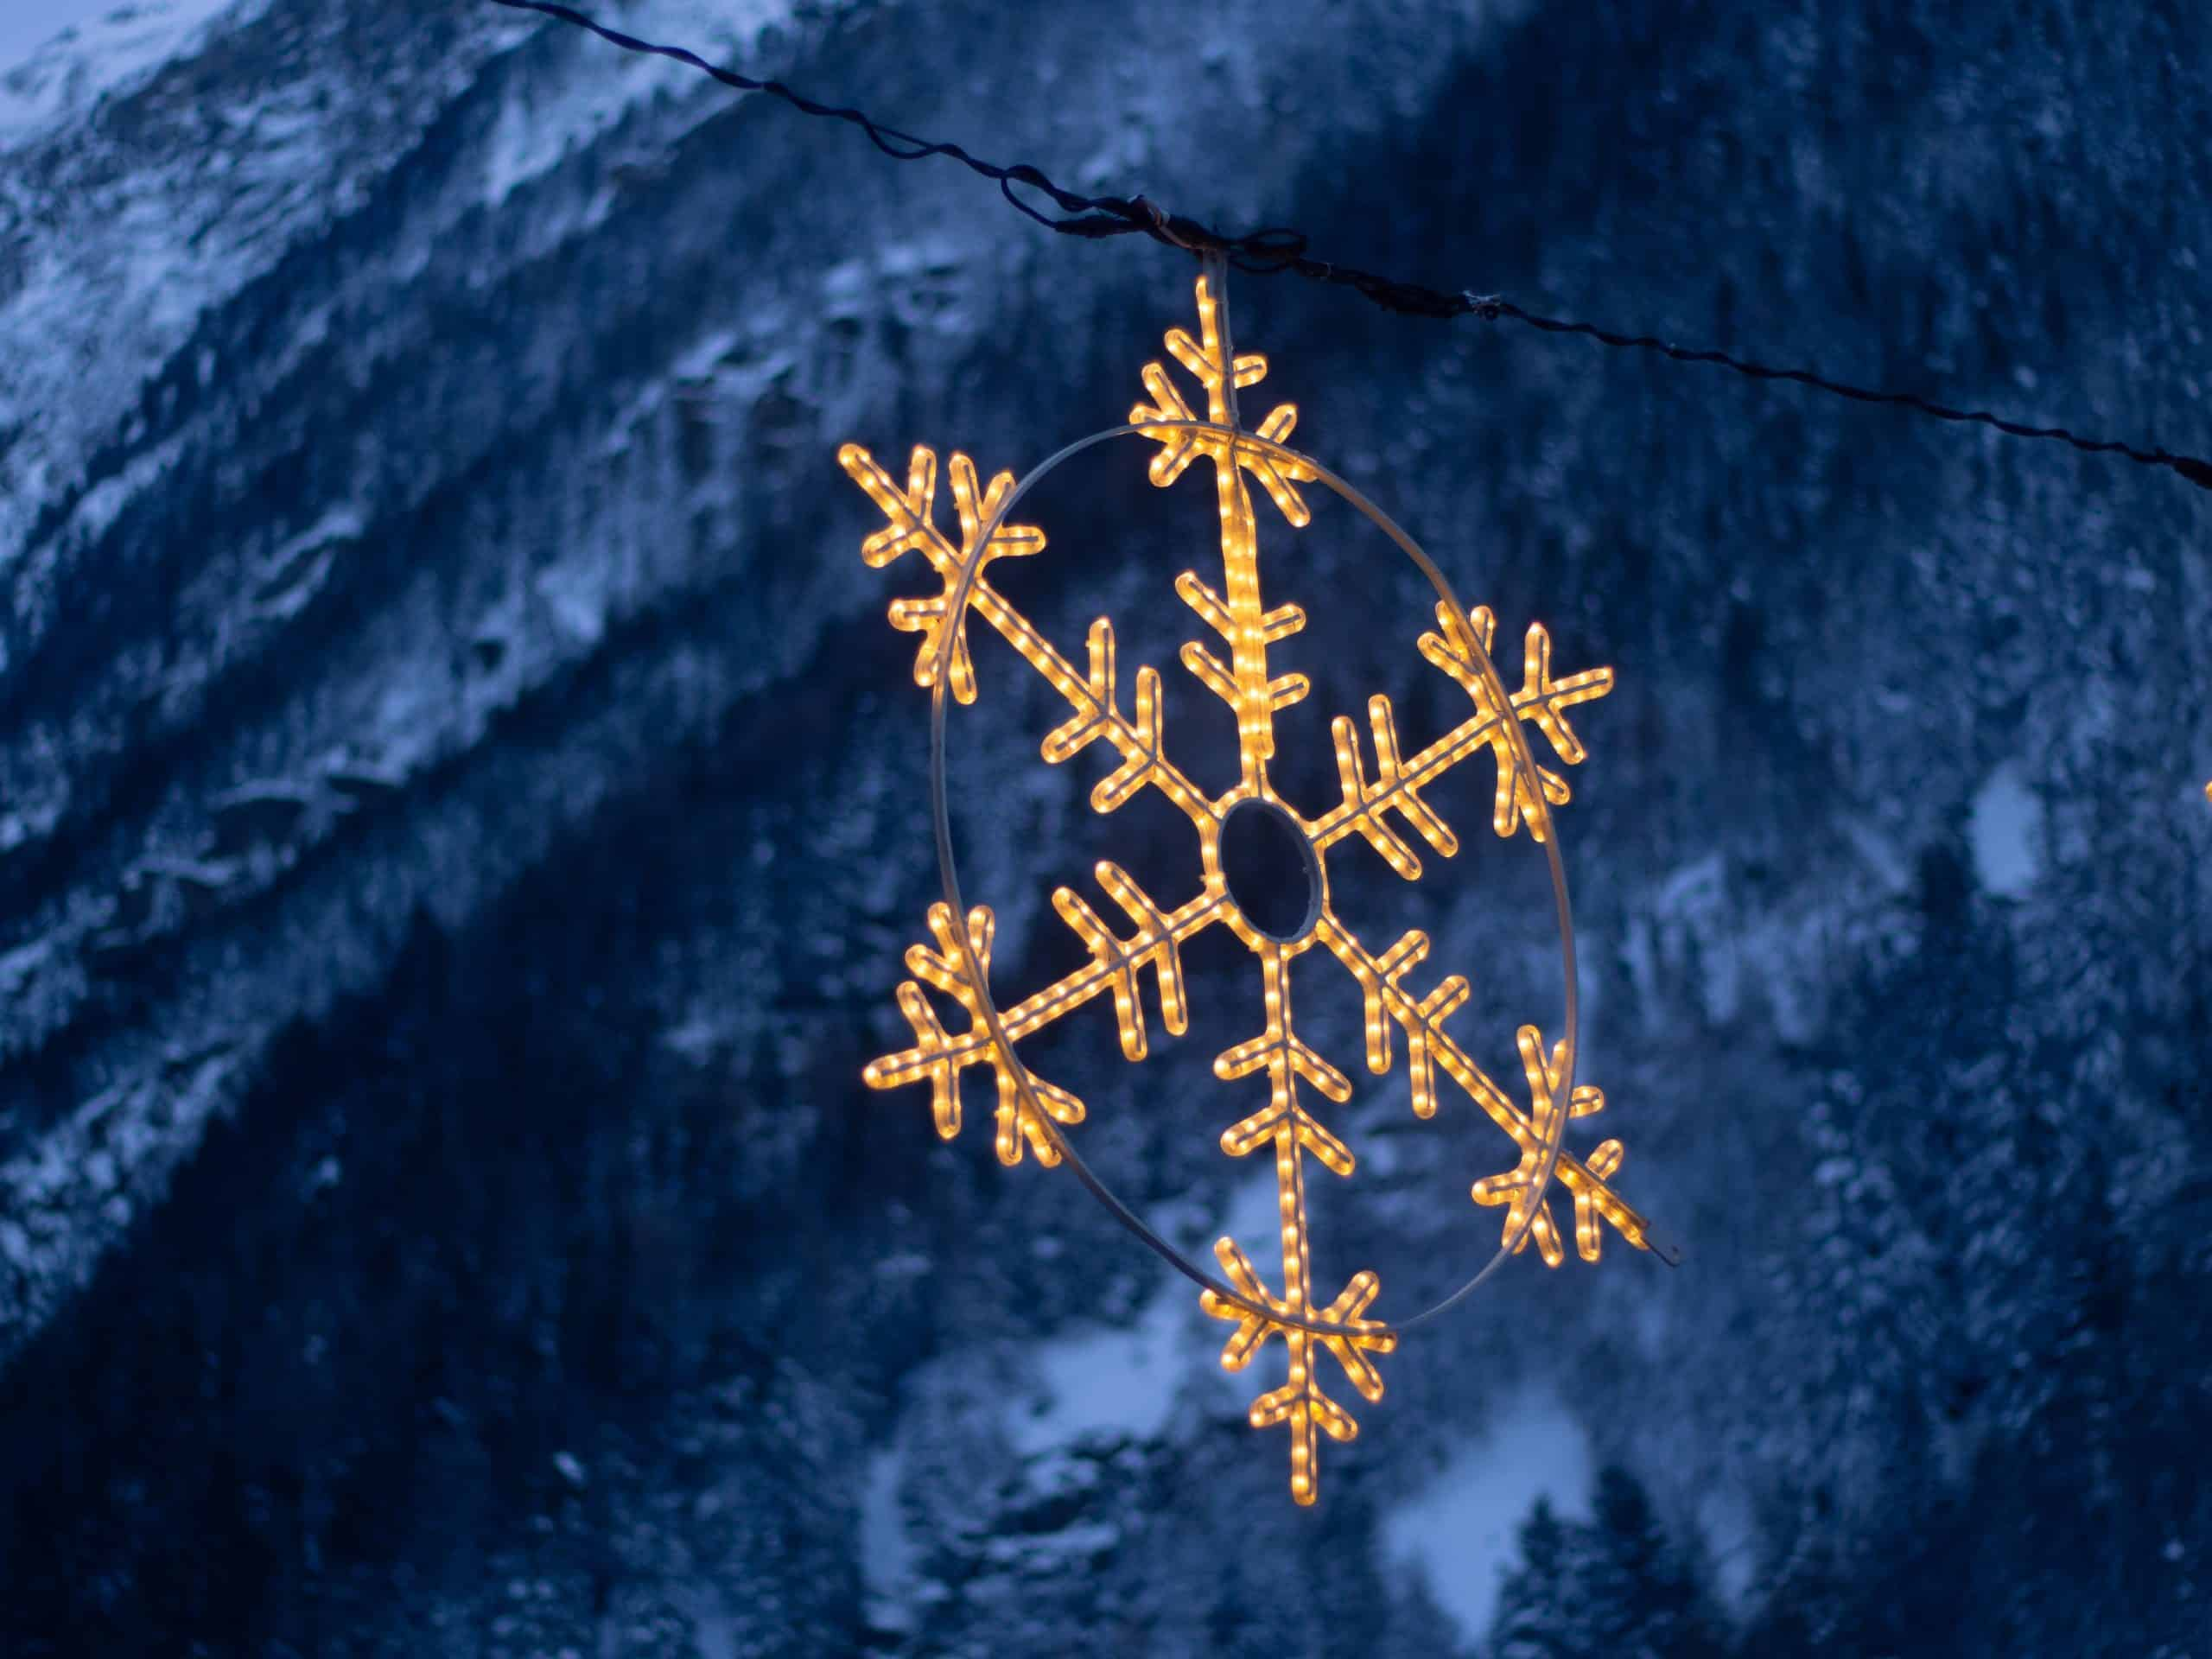 Snowflake - A Unique Way To Decorate Your Home